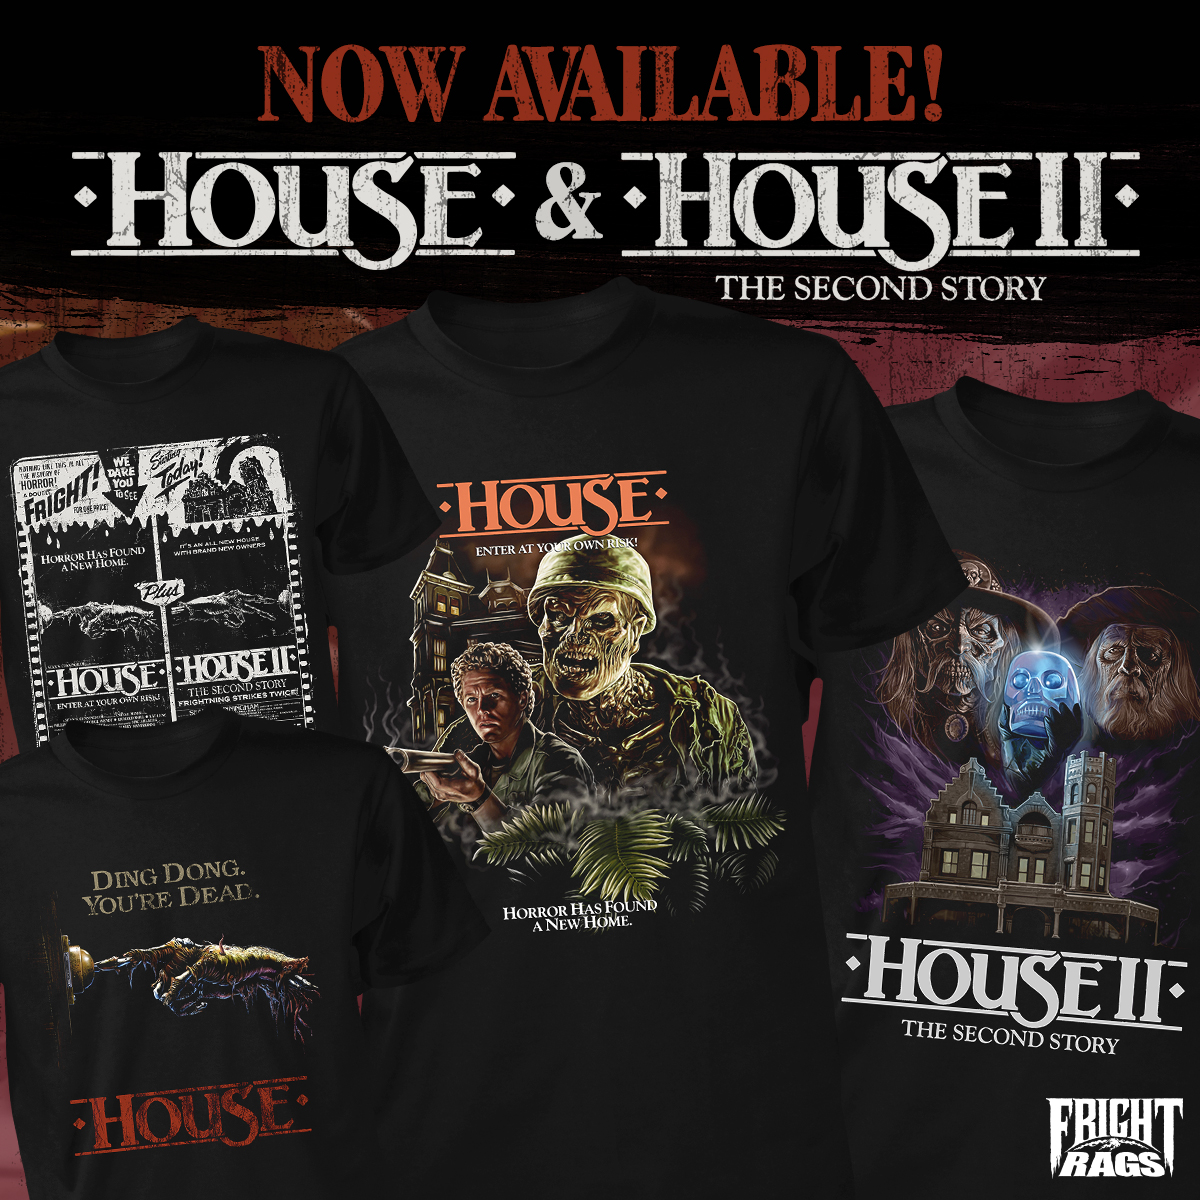 0818-House-FrightRags.jpg